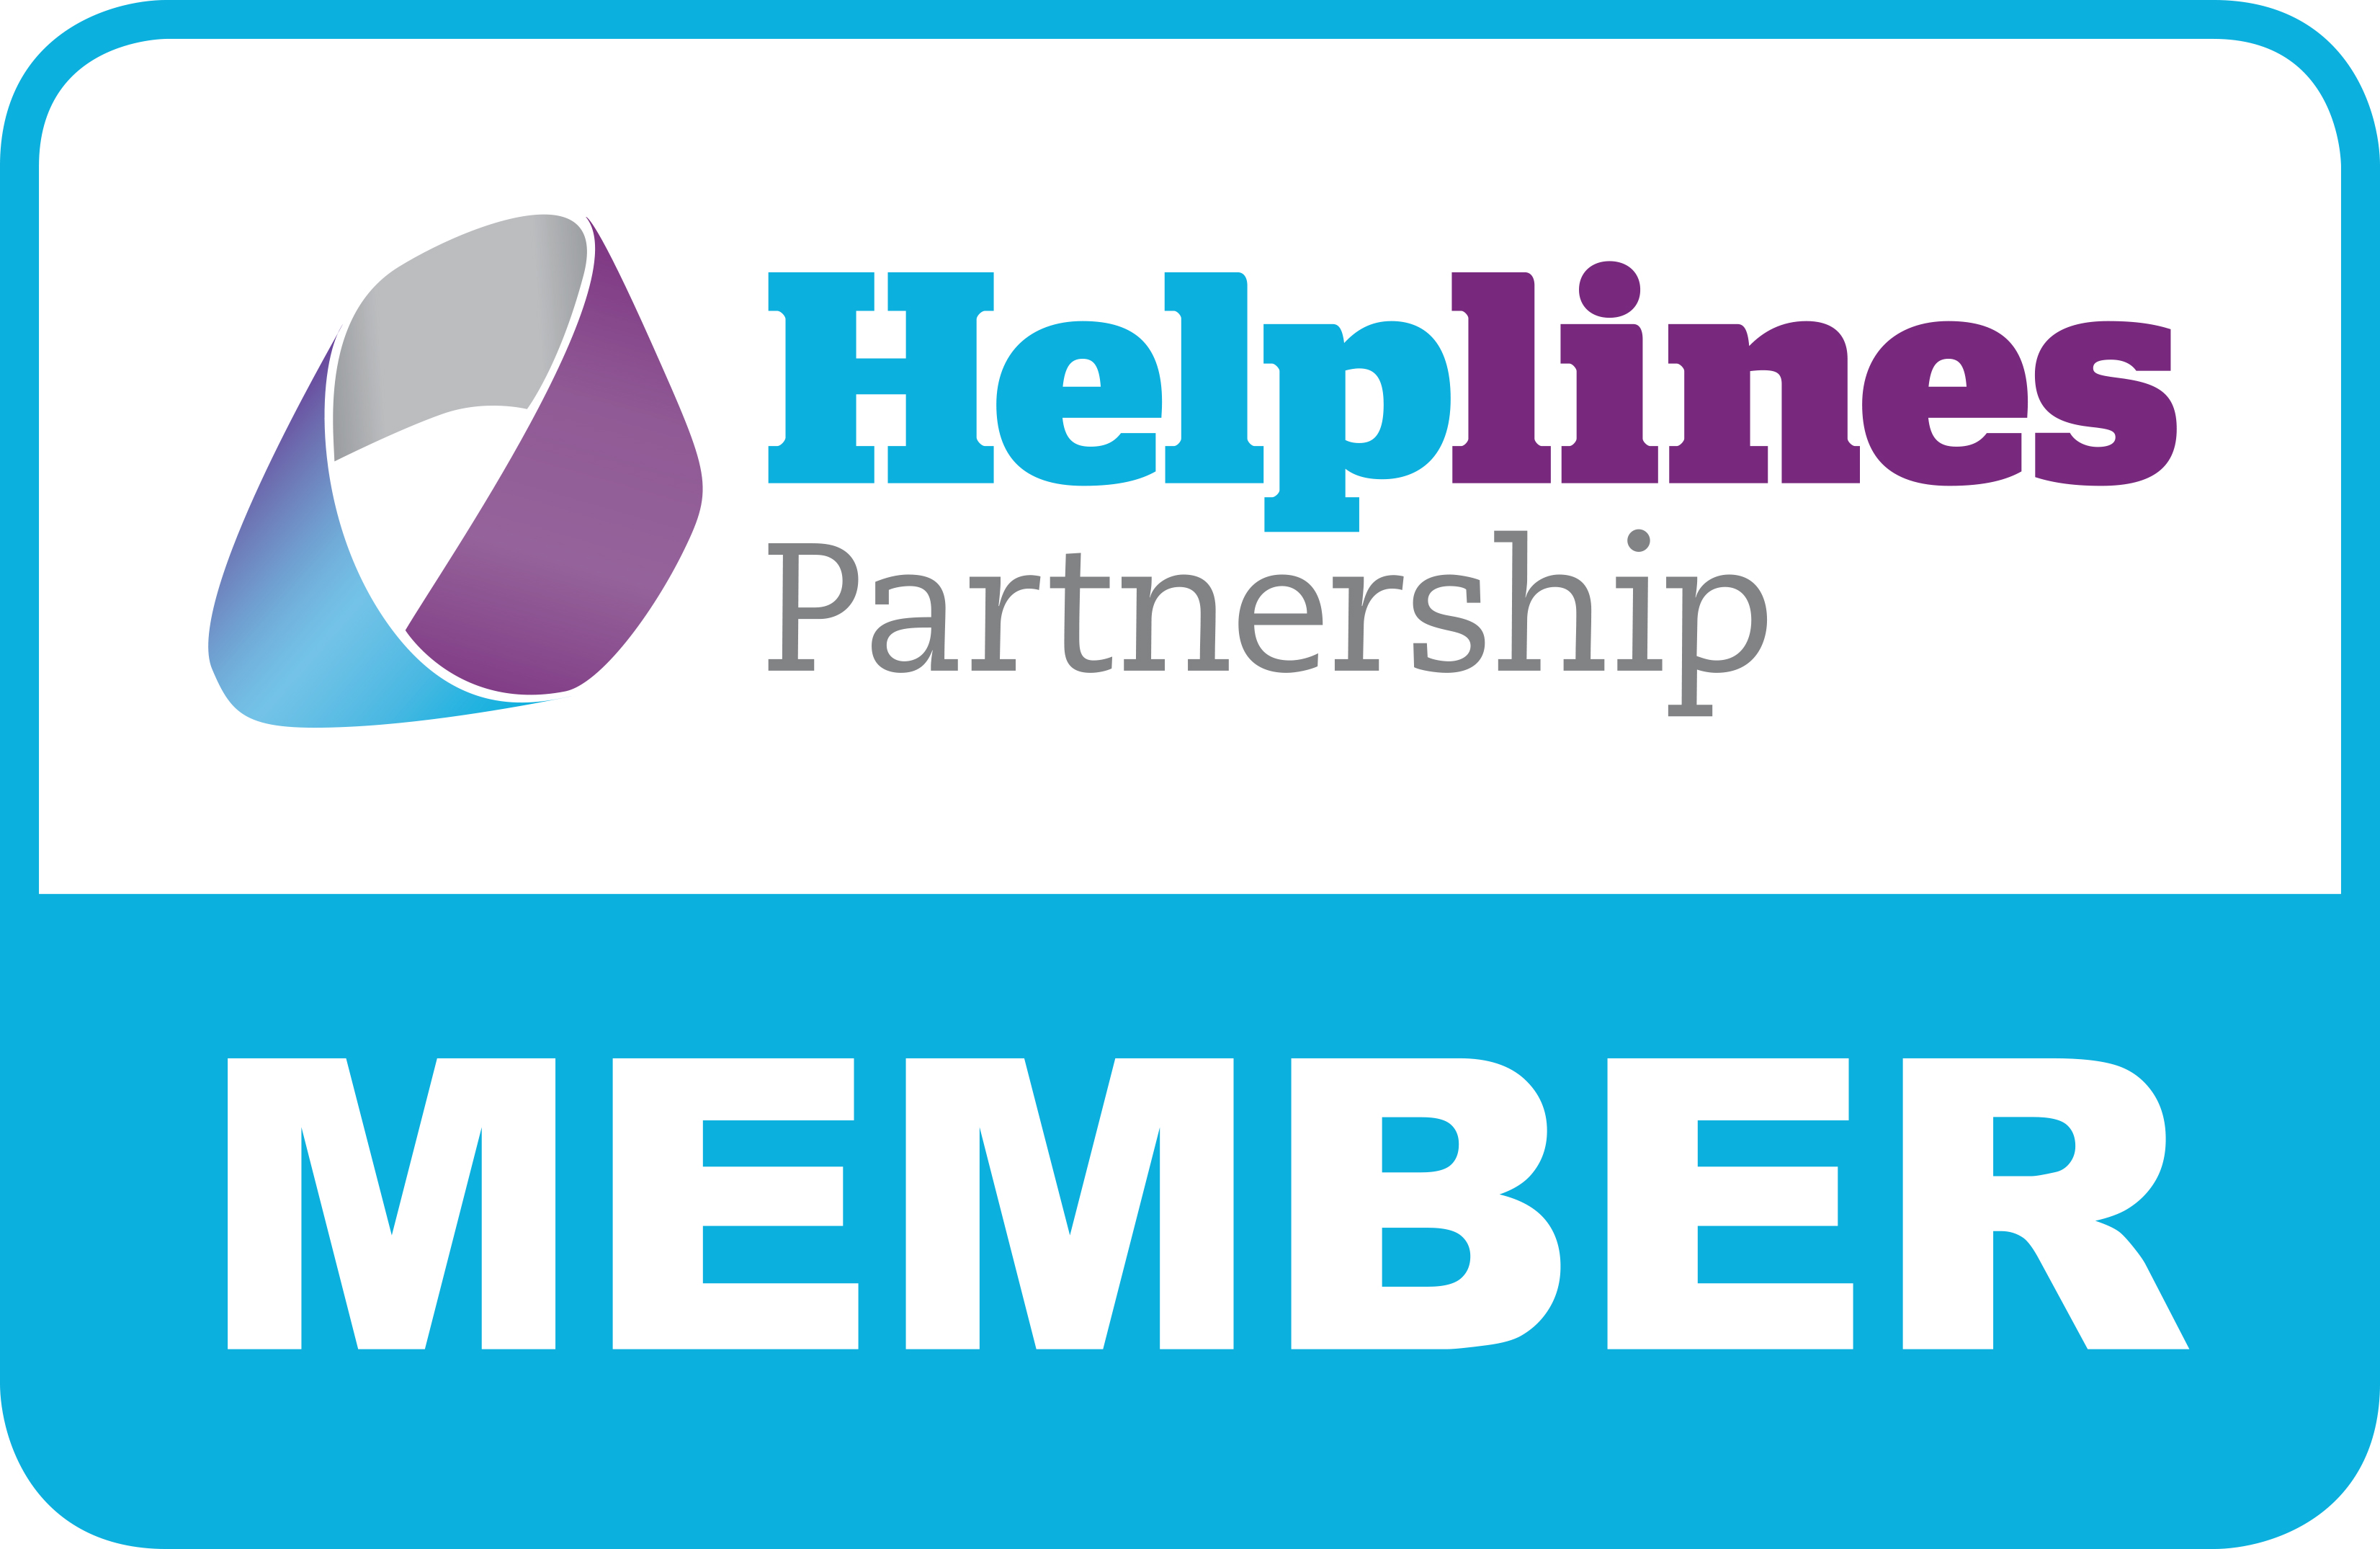 Helplines Partnerships Member logo